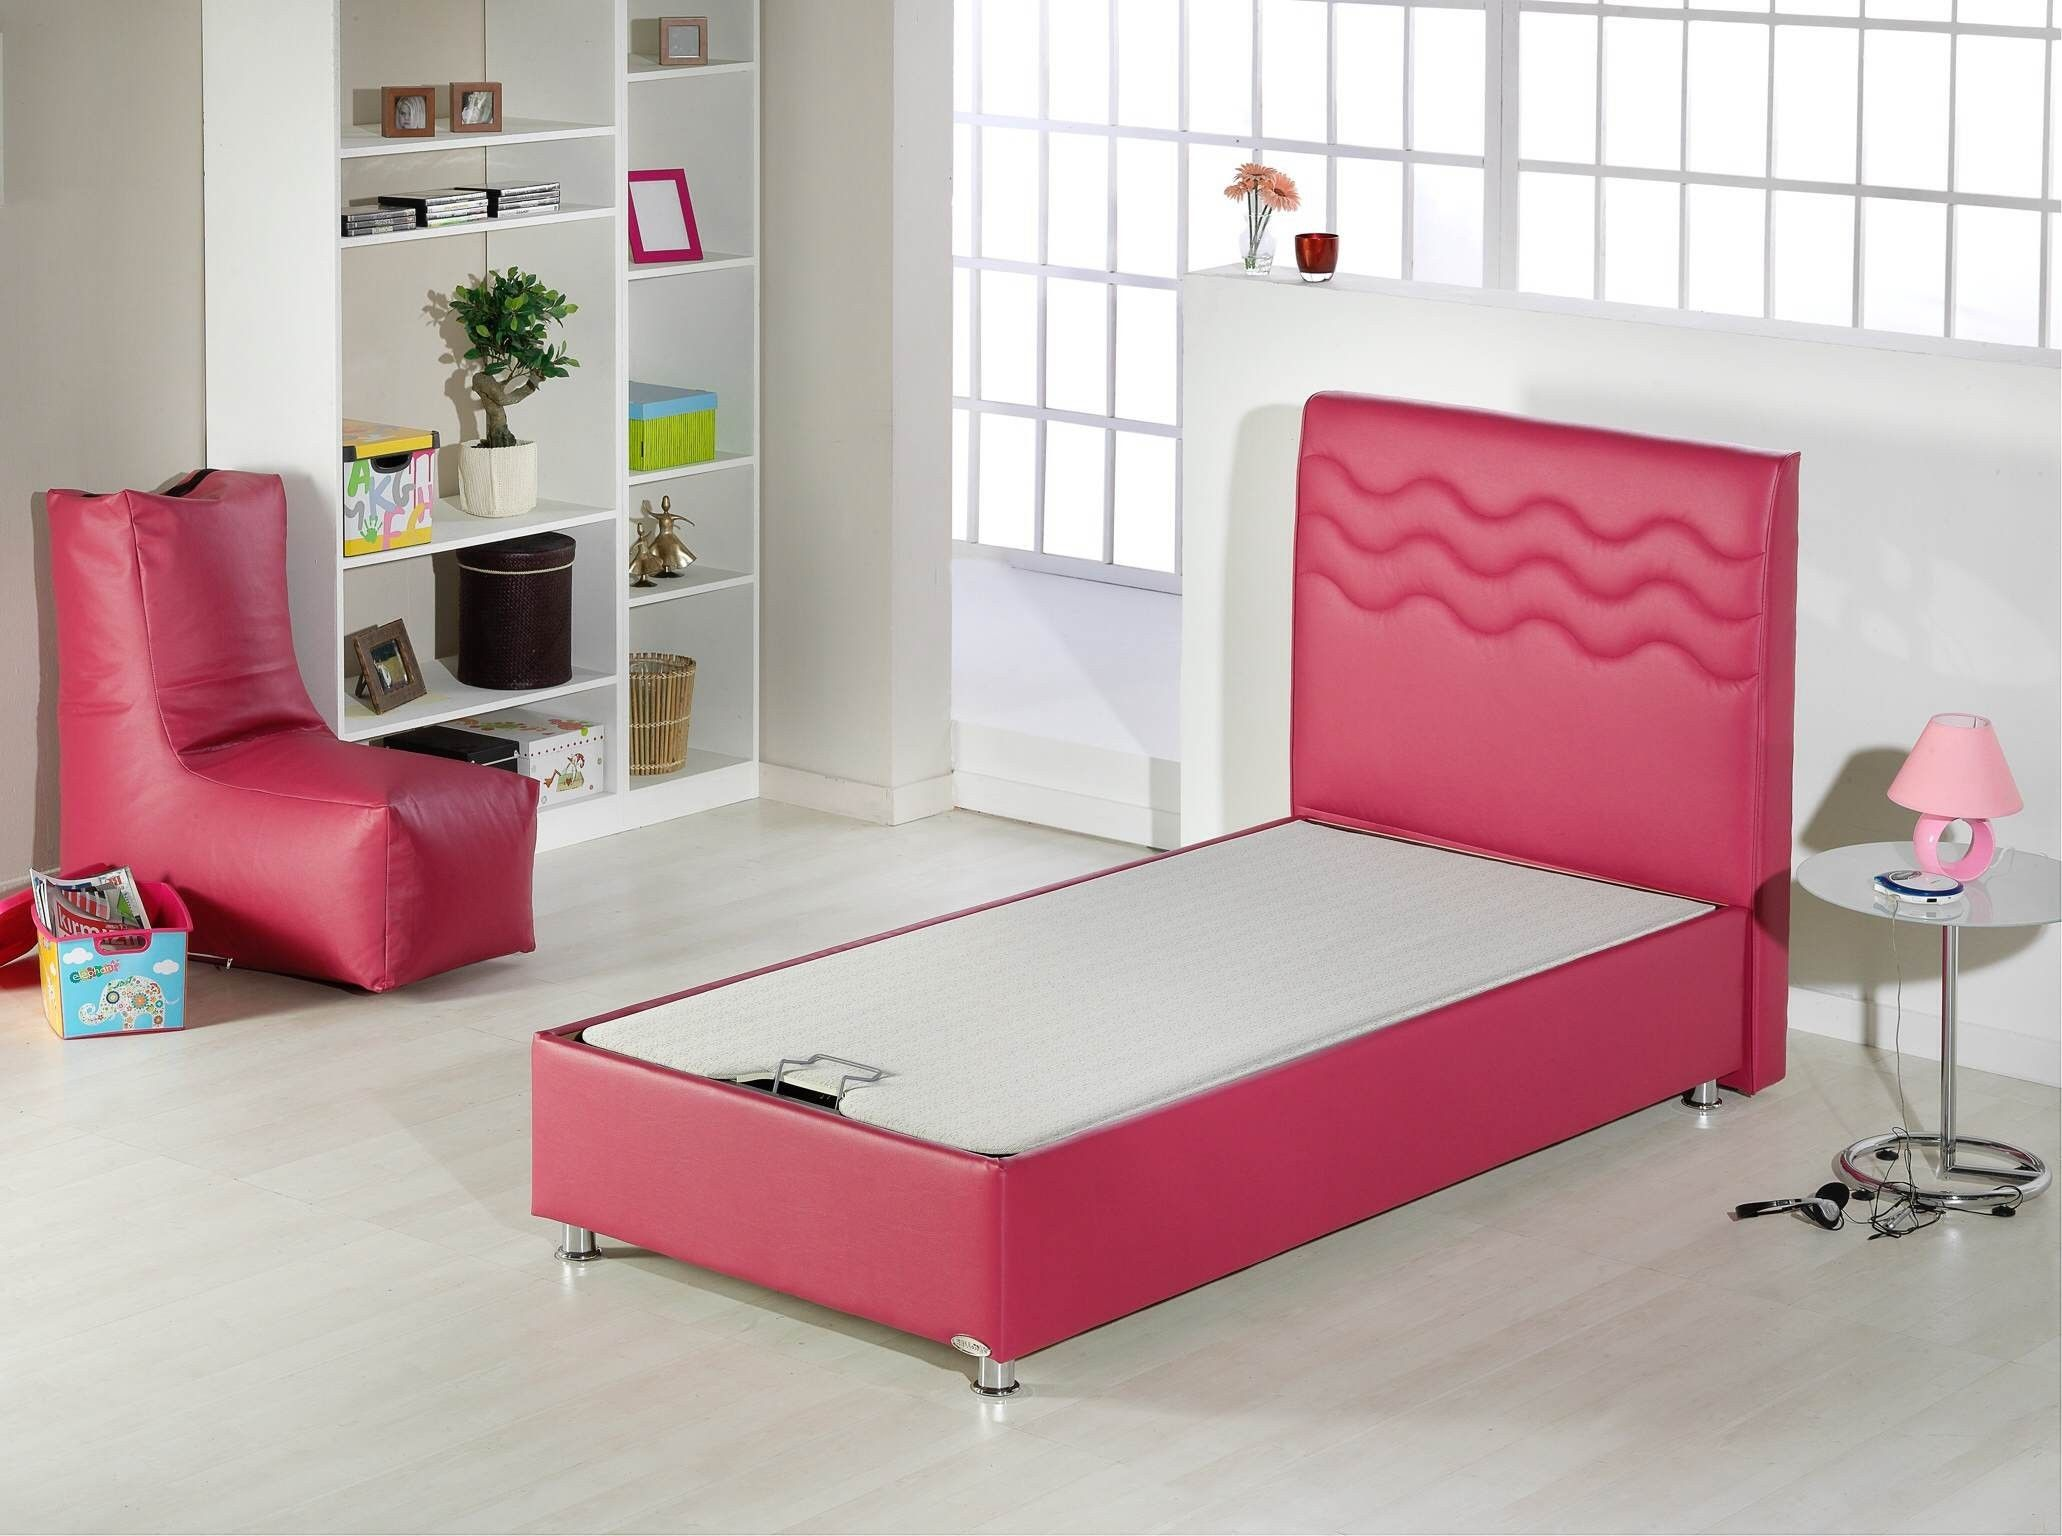 Furniture Bedroom Extra Long Pink Upholstered Bed Frame Mixed White Mattress And Round Side Table Extra Long Twin